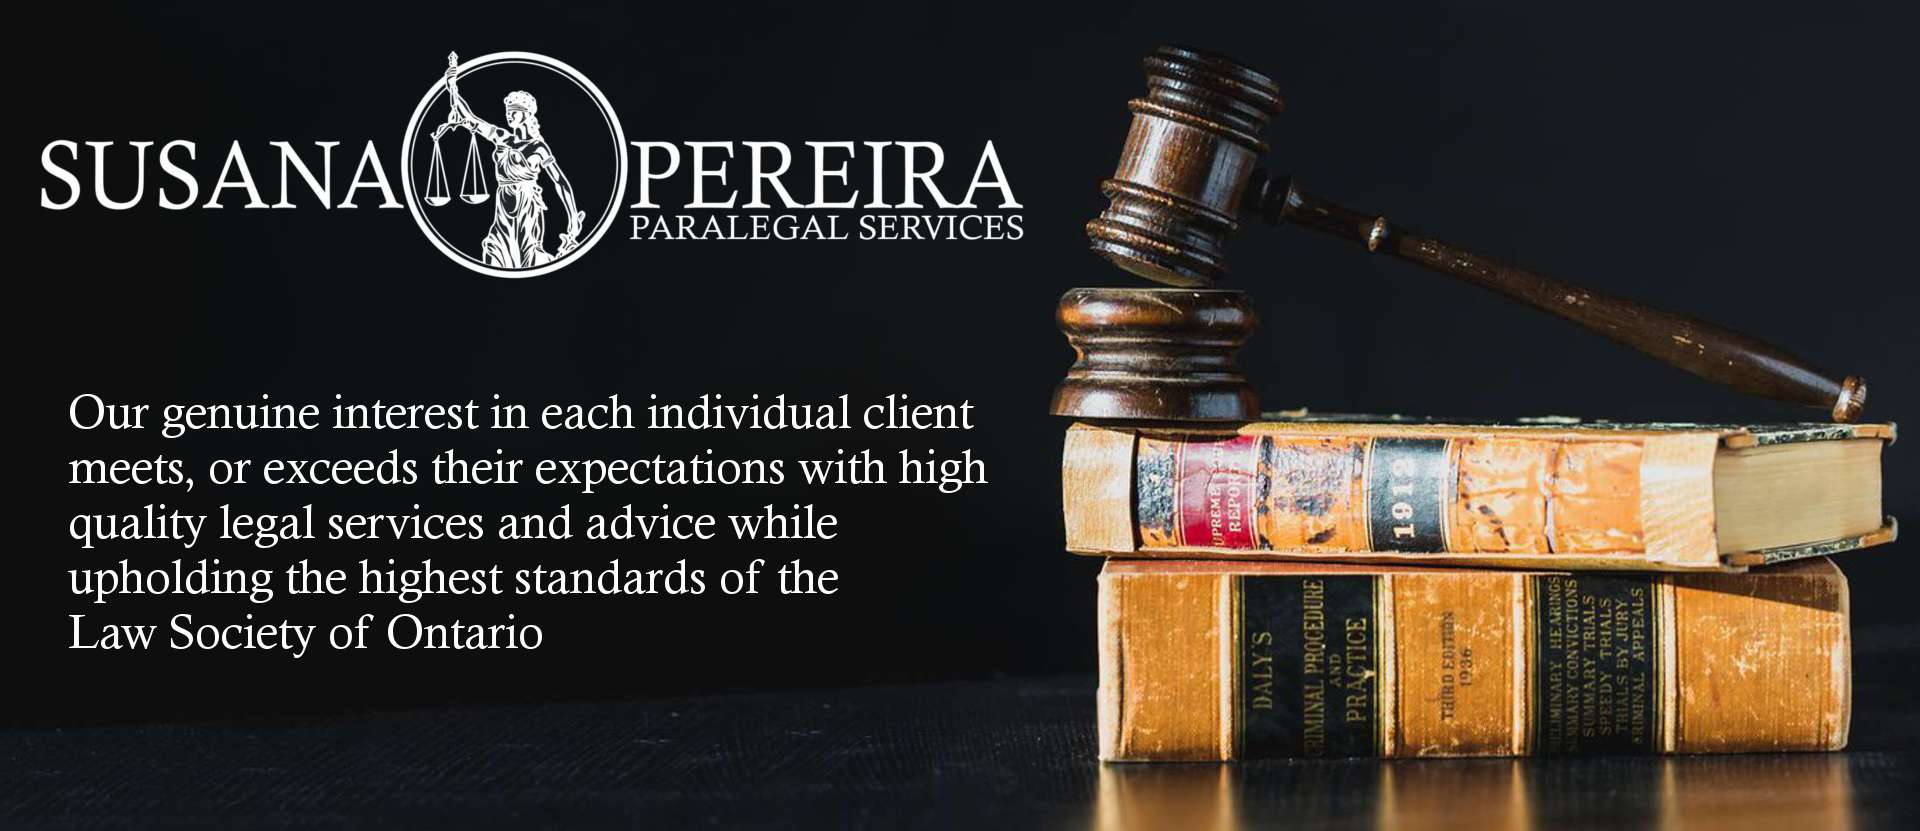 susana pereira paralegal services exceeds expectations while upholding the highest standards of the Law Society of Ontario